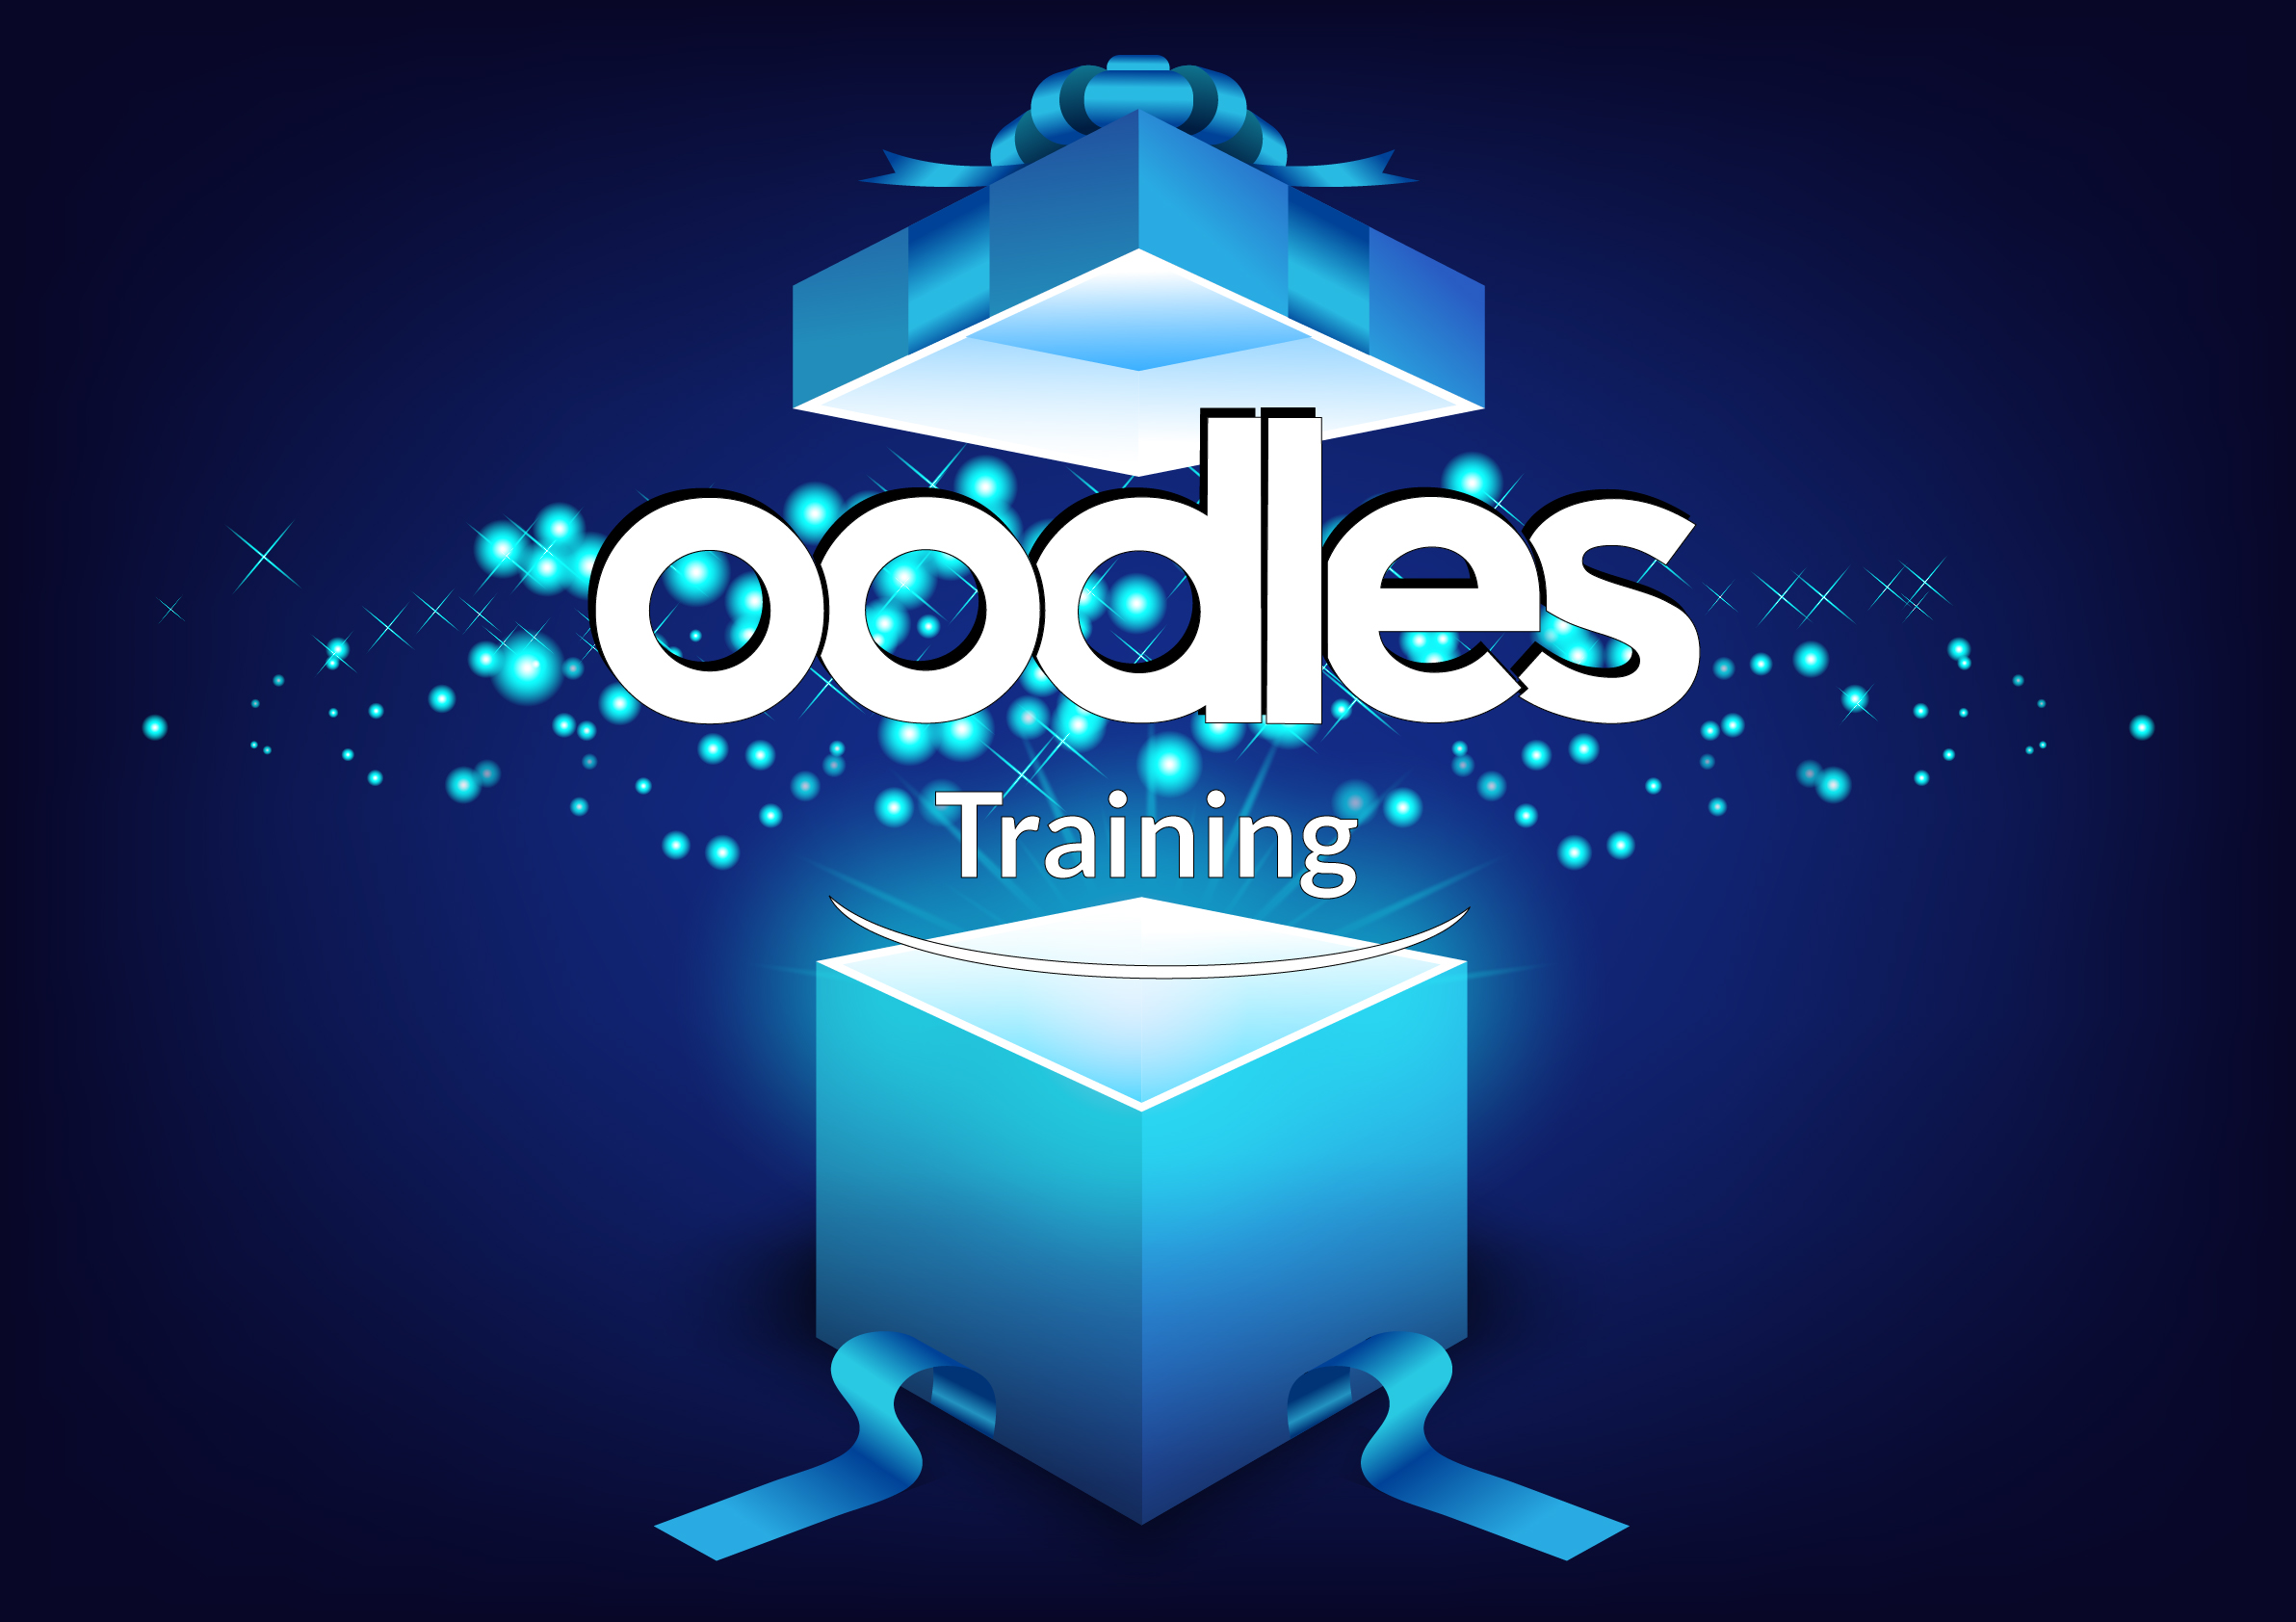 Oodles Training